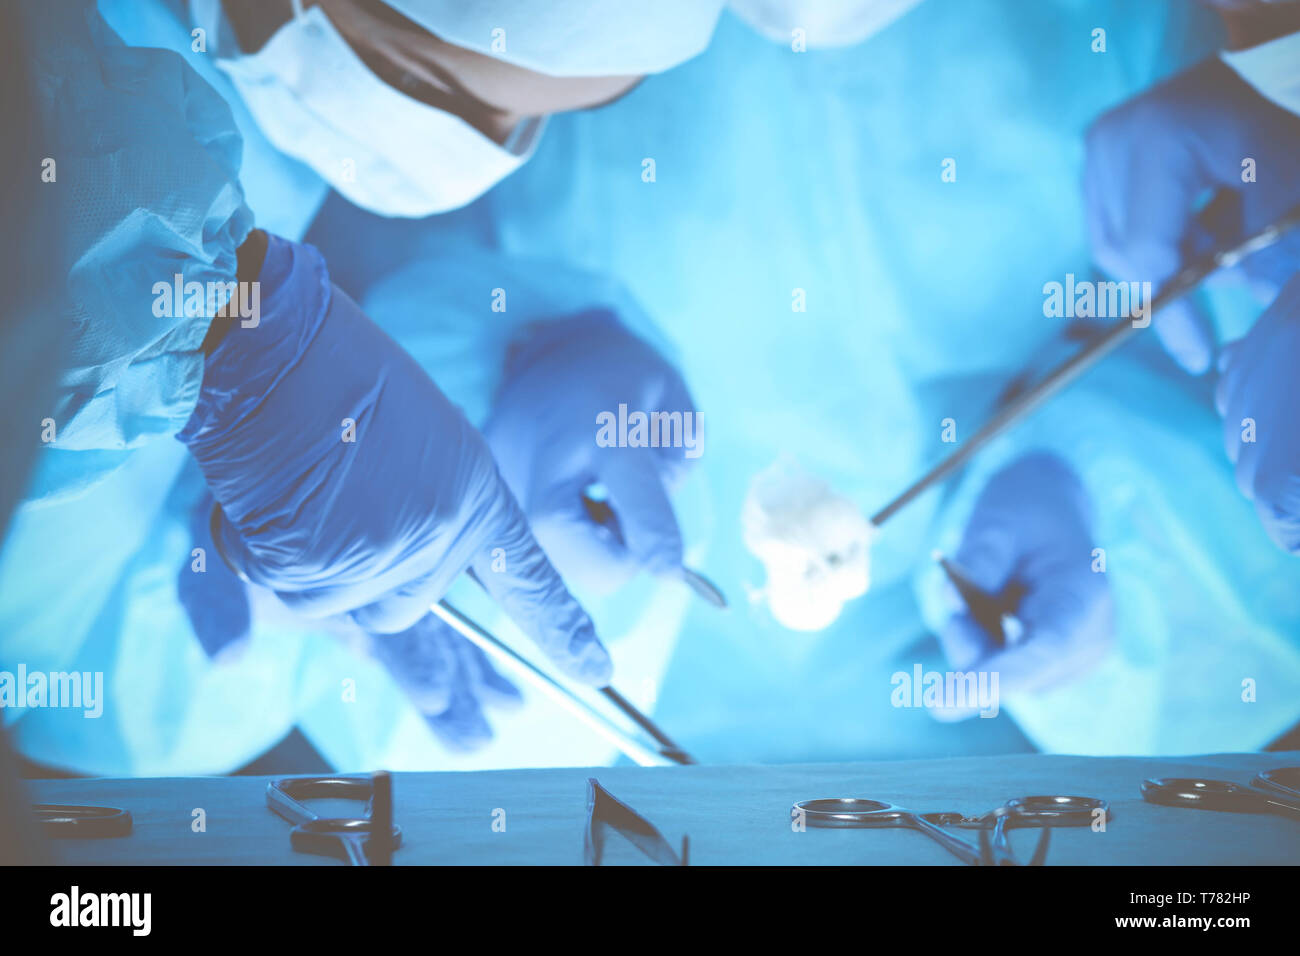 Group of surgeons at work while operating at hospital. Health care and veterinary concept. - Stock Image